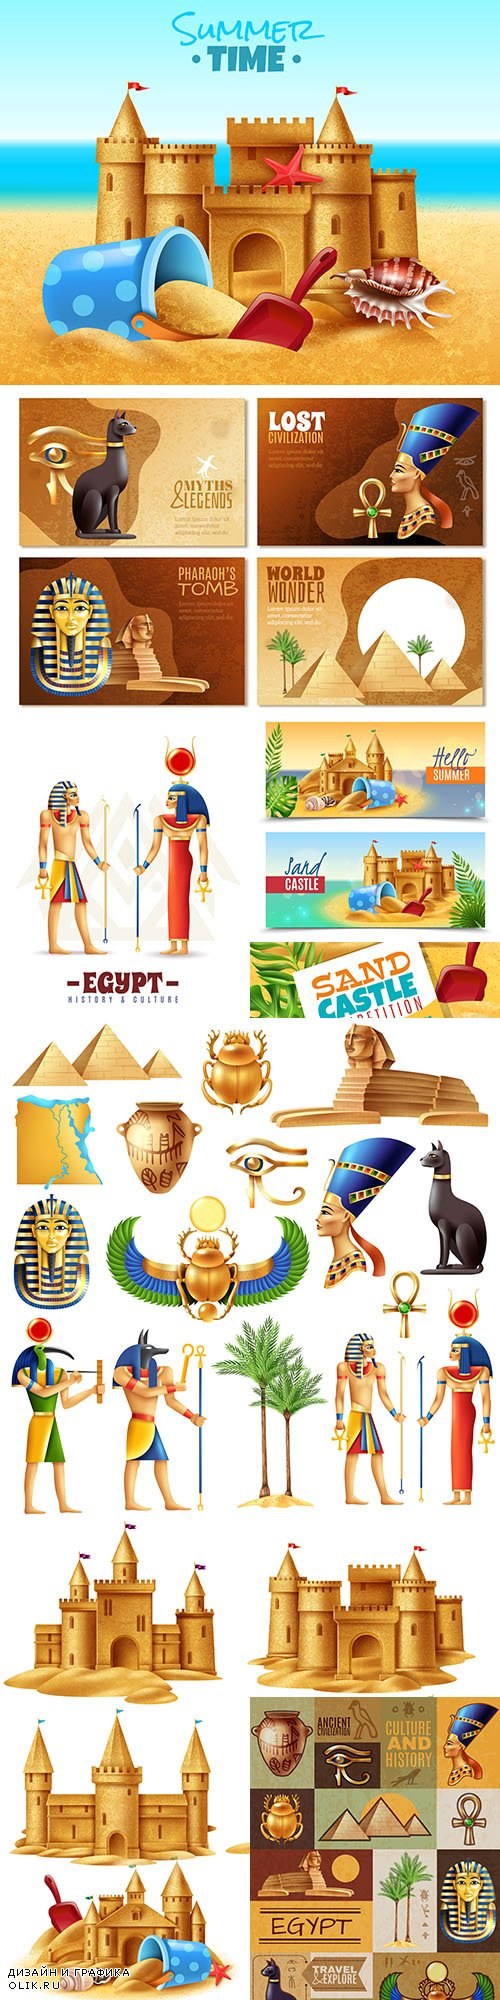 Castle sand and set Egypt symbols realistic illustrations